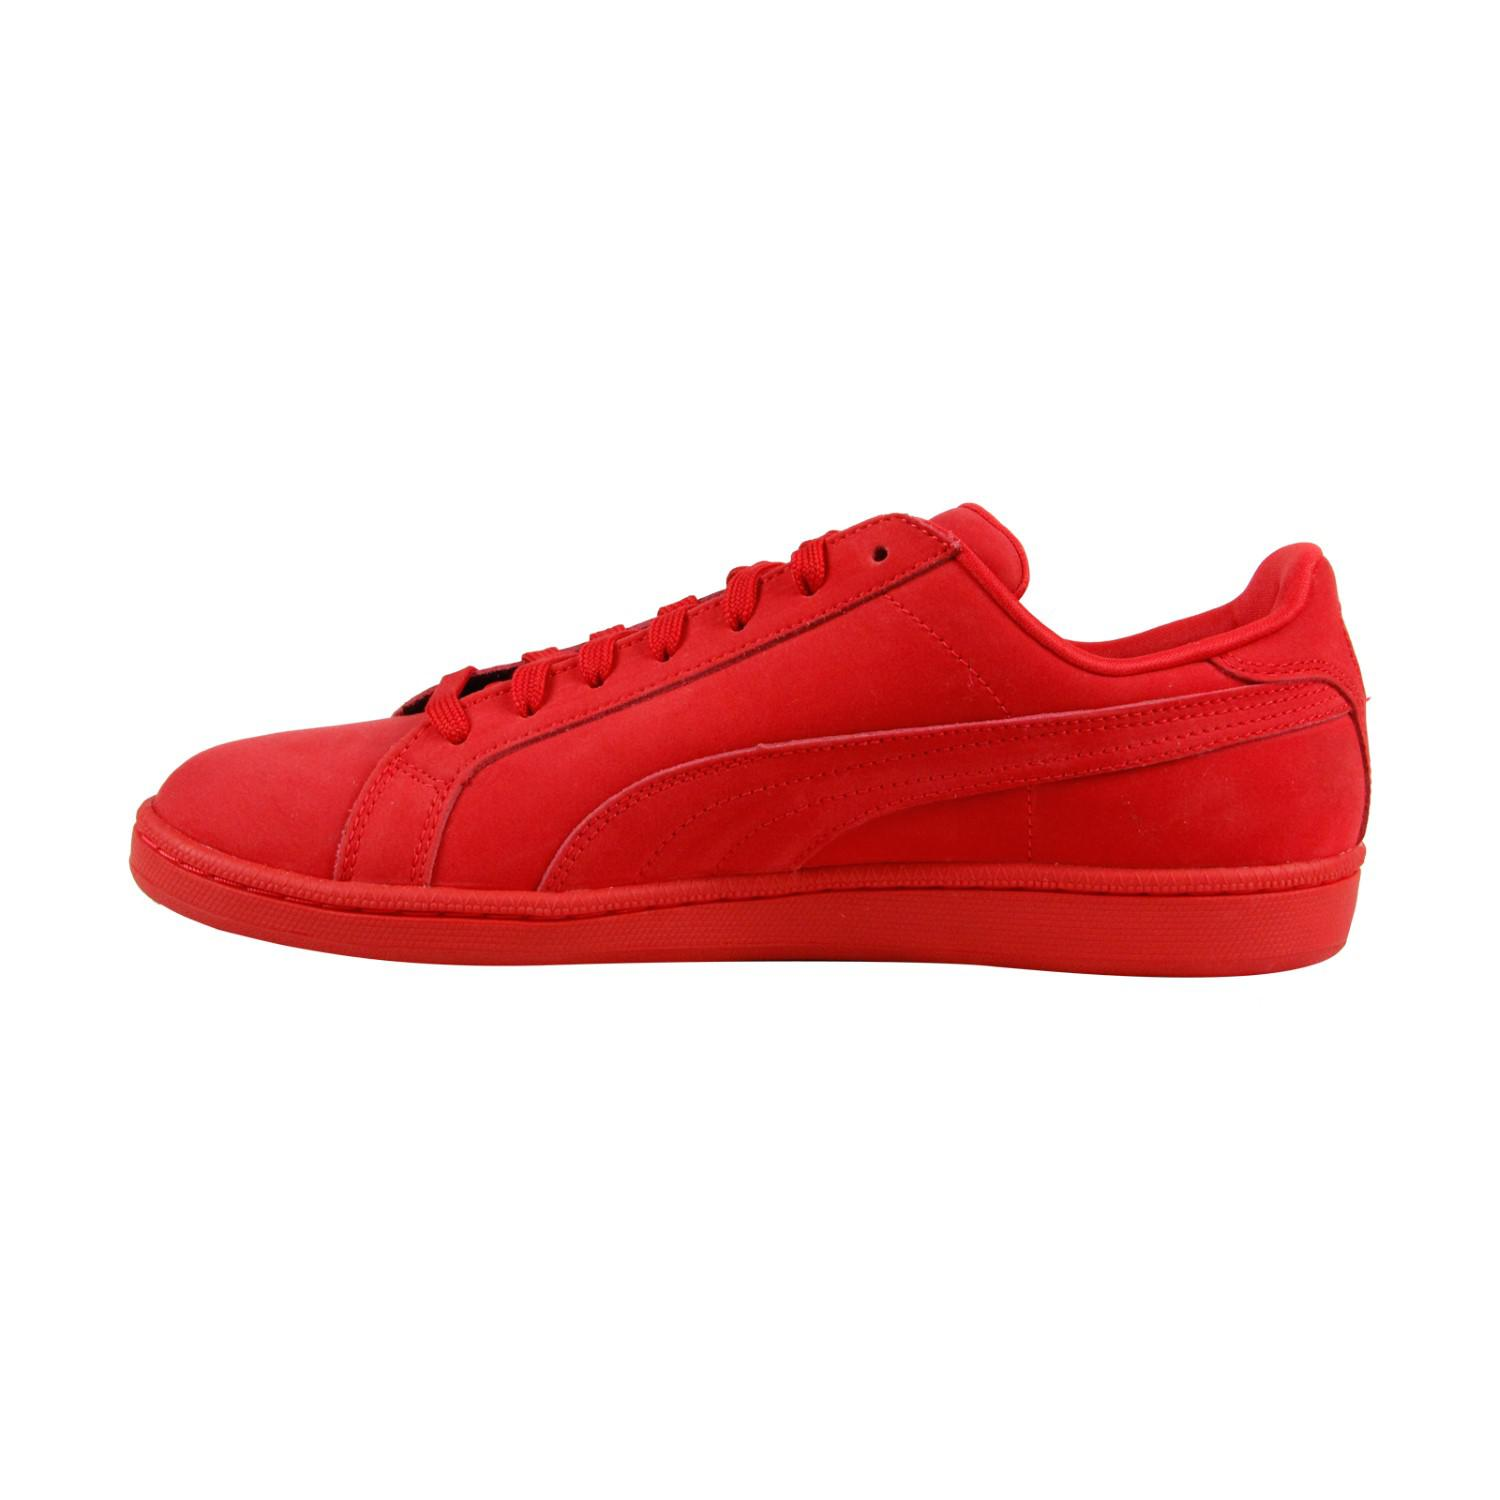 b532237e0c6 Lyst - PUMA Smash Buck Mono High Risk Red Mens Lace Up Sneakers in ...